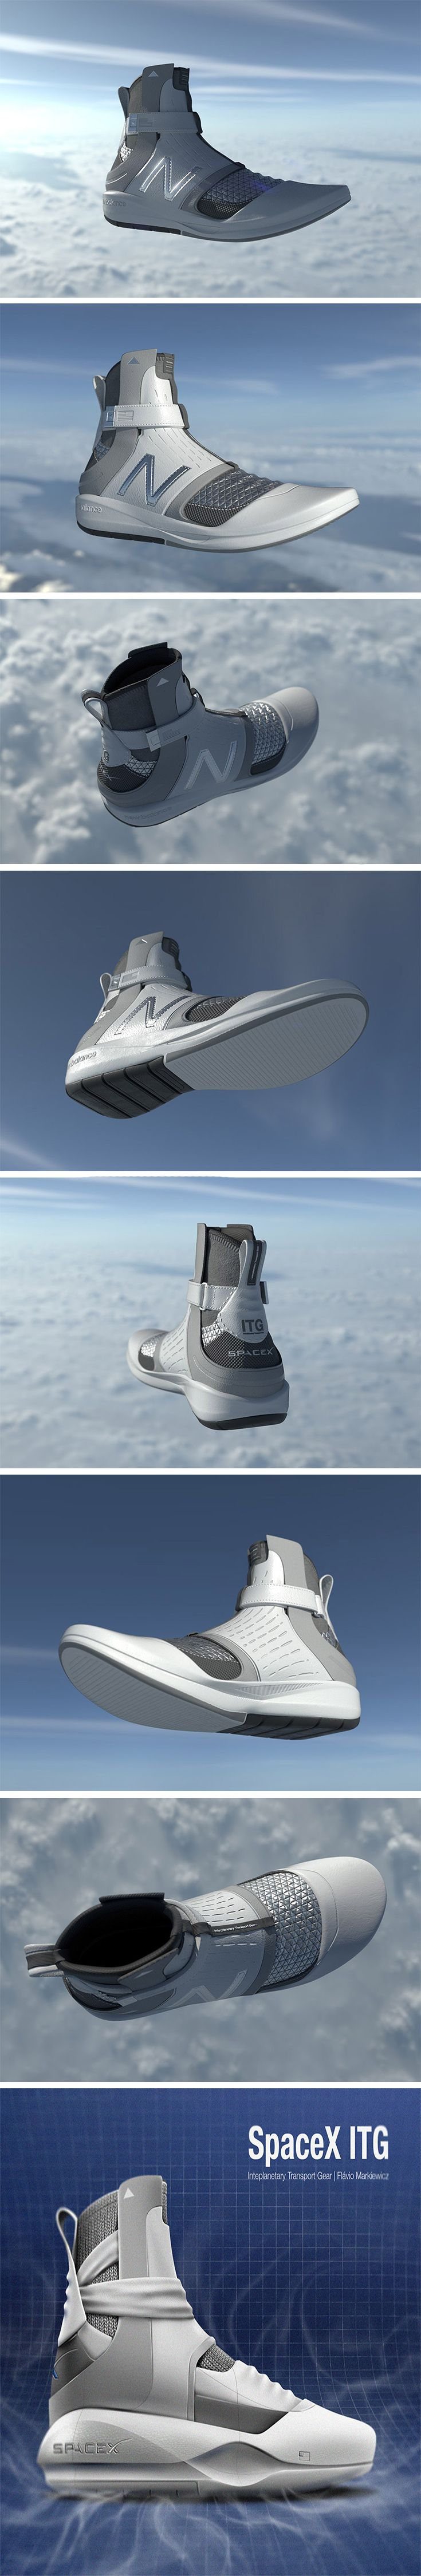 Props to Space X for launching the Falcon 9 during rush hour! It's got everyone here in Los Angeles re-interested in science! It's also the perfect time to talk about this otherworldly footwear design by Flávio Mankiewicz. Inspired by Space X with design cues from NASA, it's futuristic out-of-this-world style in old-school hightop sneaker style.